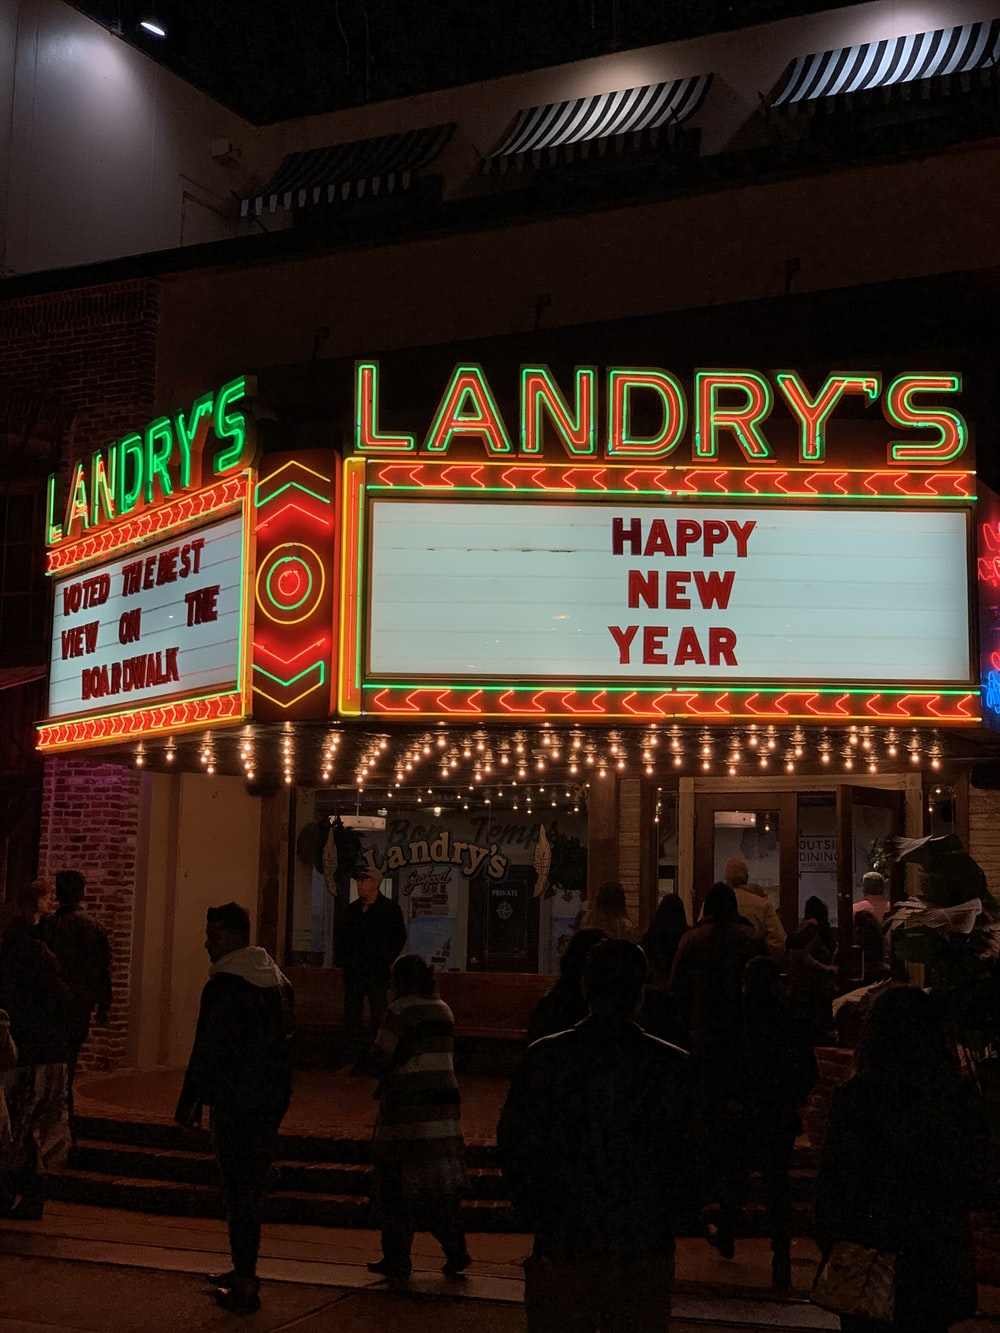 Landry's Happy New Year